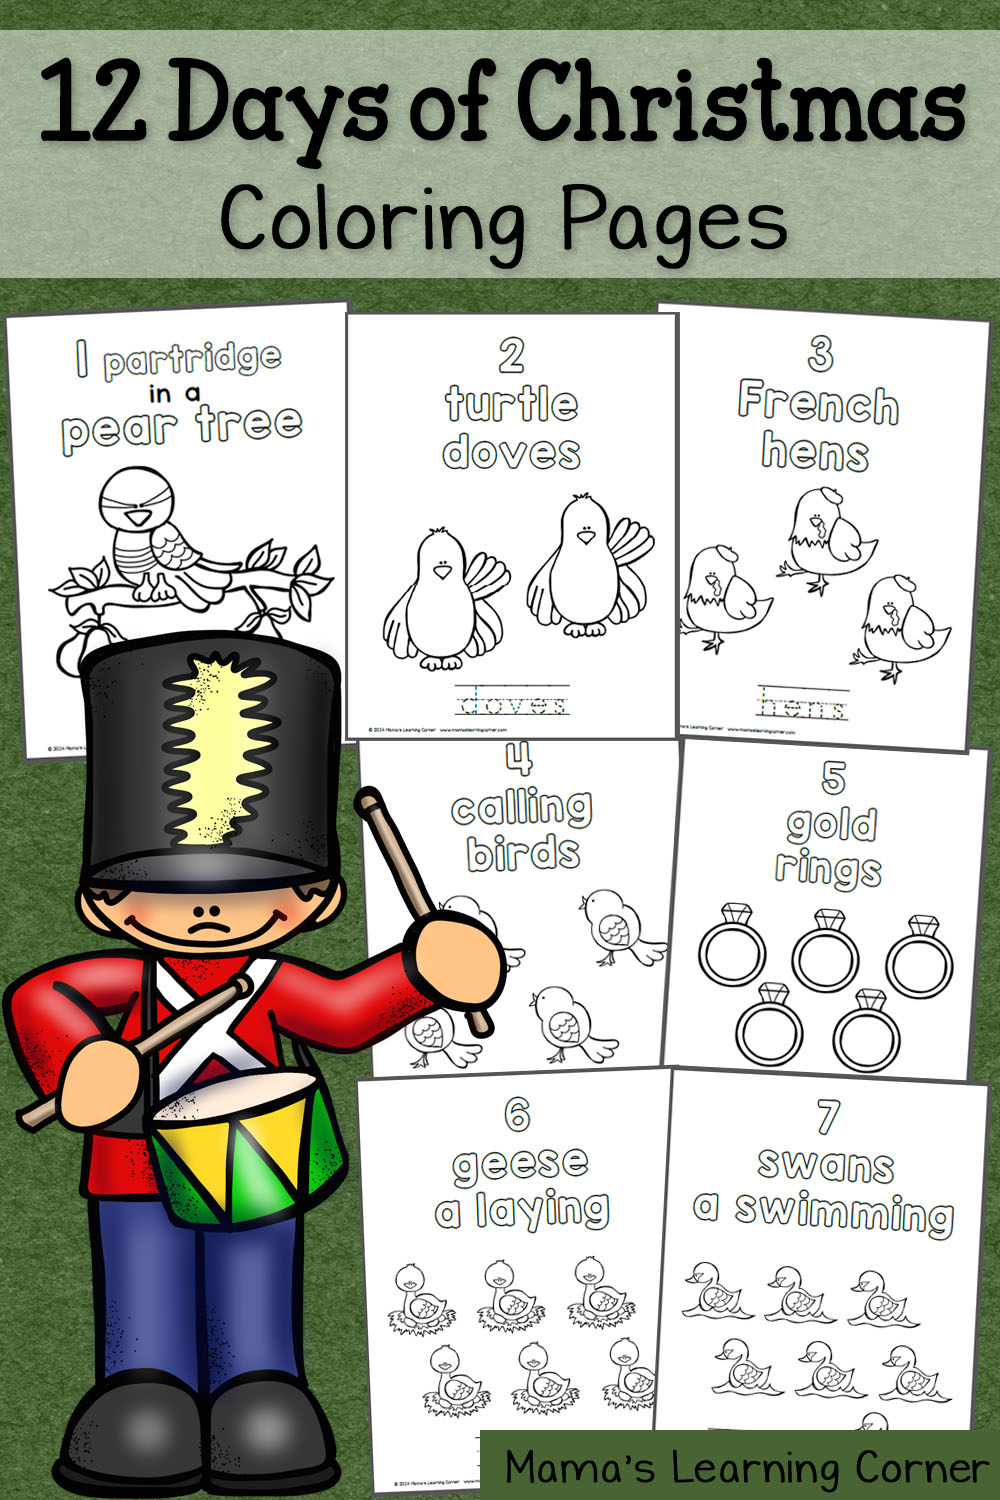 12 Days Of Christmas Coloring Pages To Print - Worksheet & Coloring ...